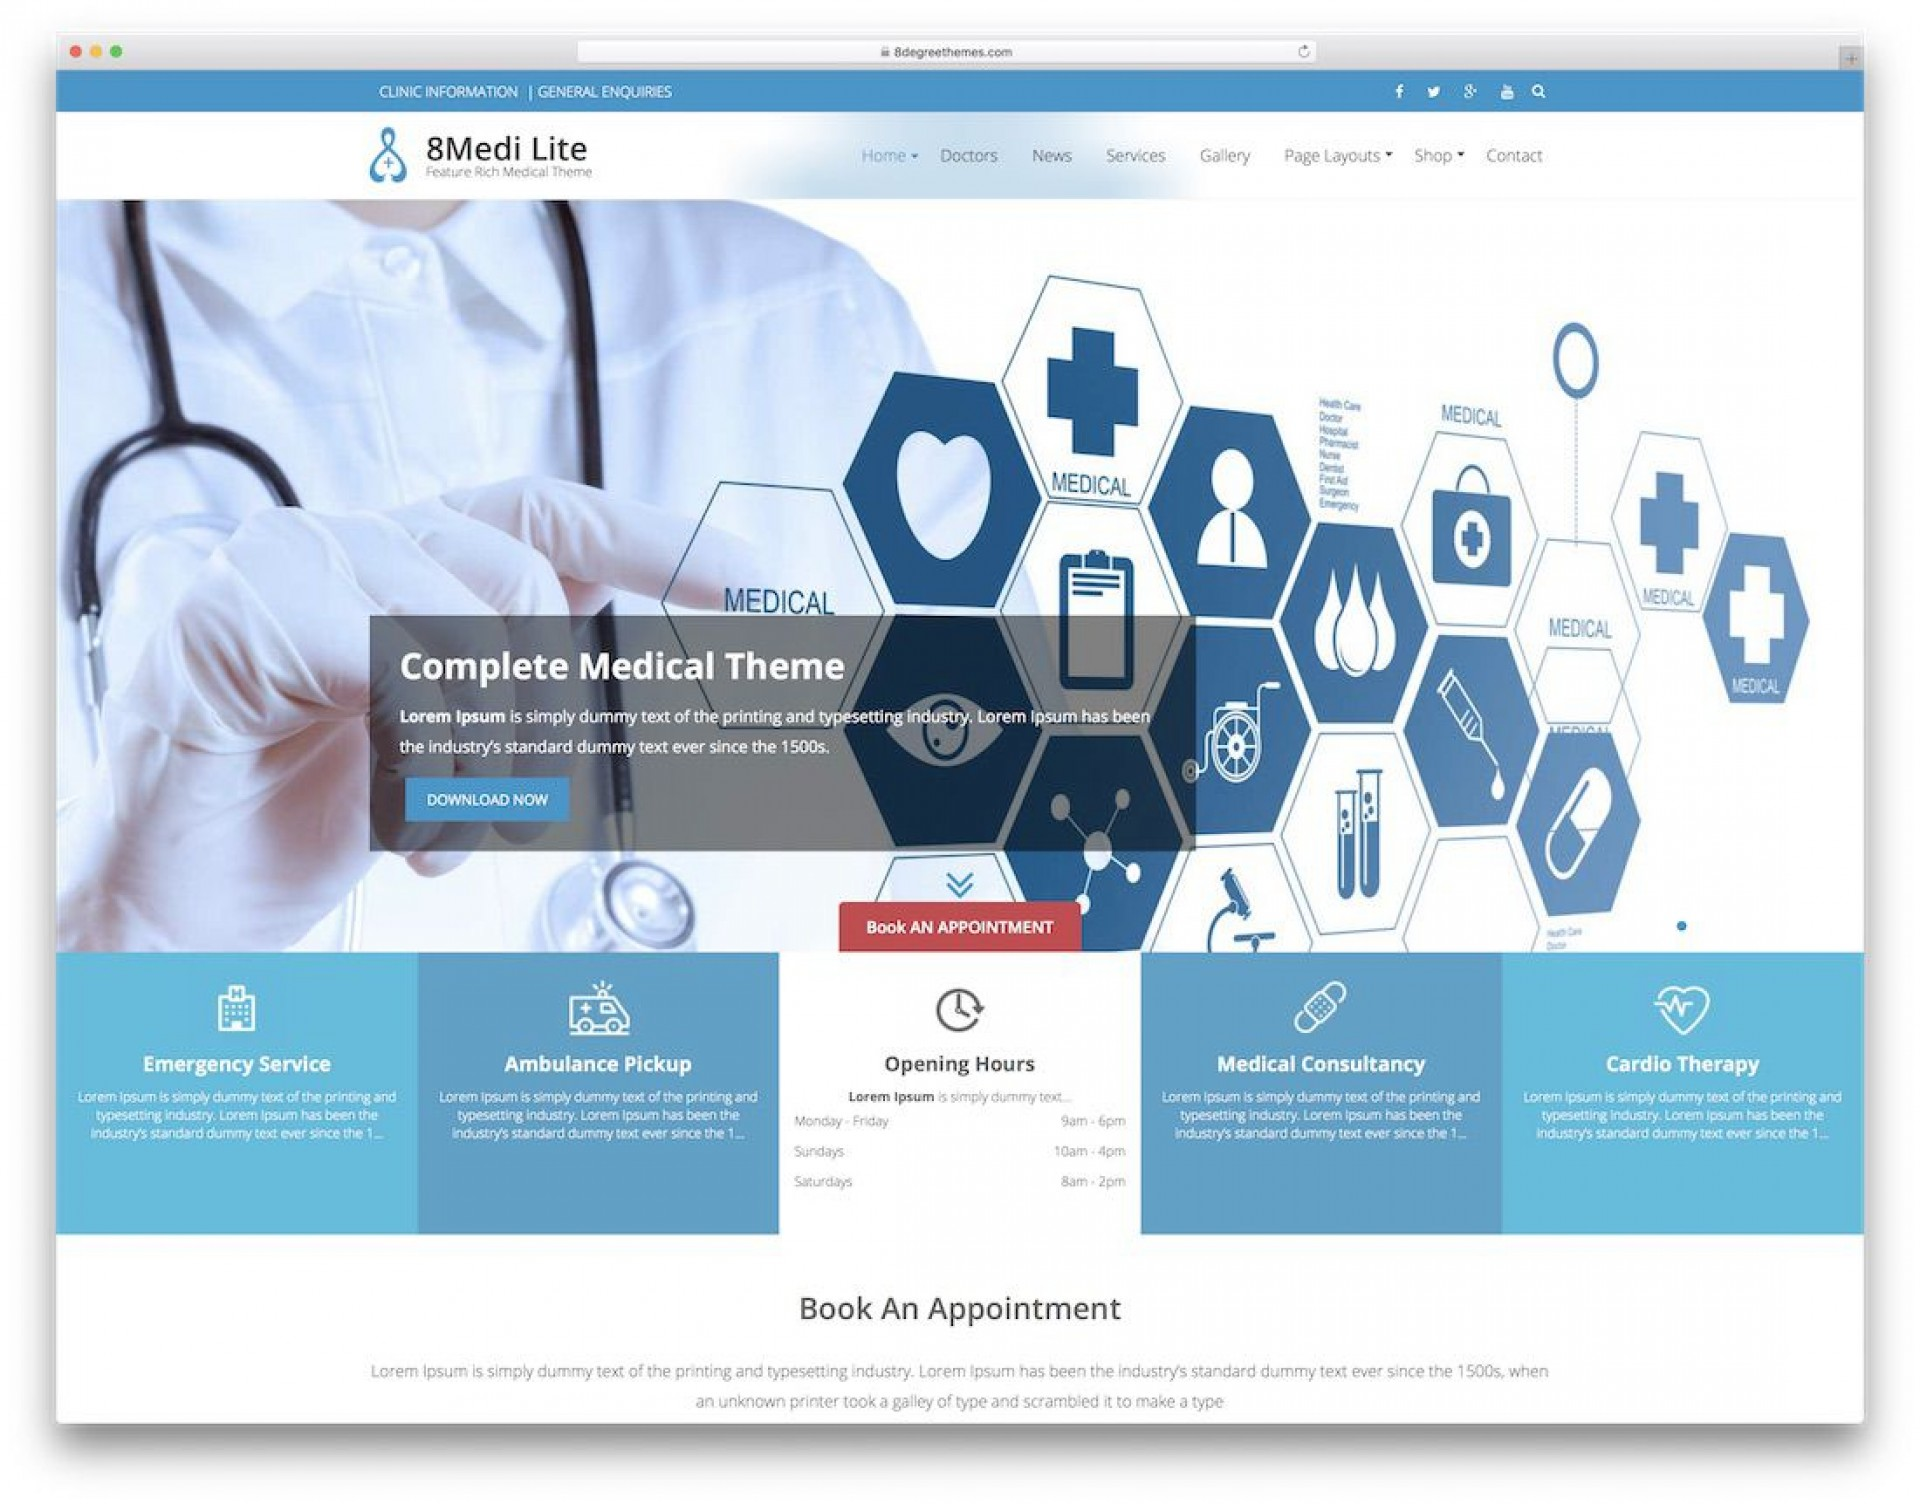 004 Unbelievable Project Management Website Template Free Download High Resolution  Software1920